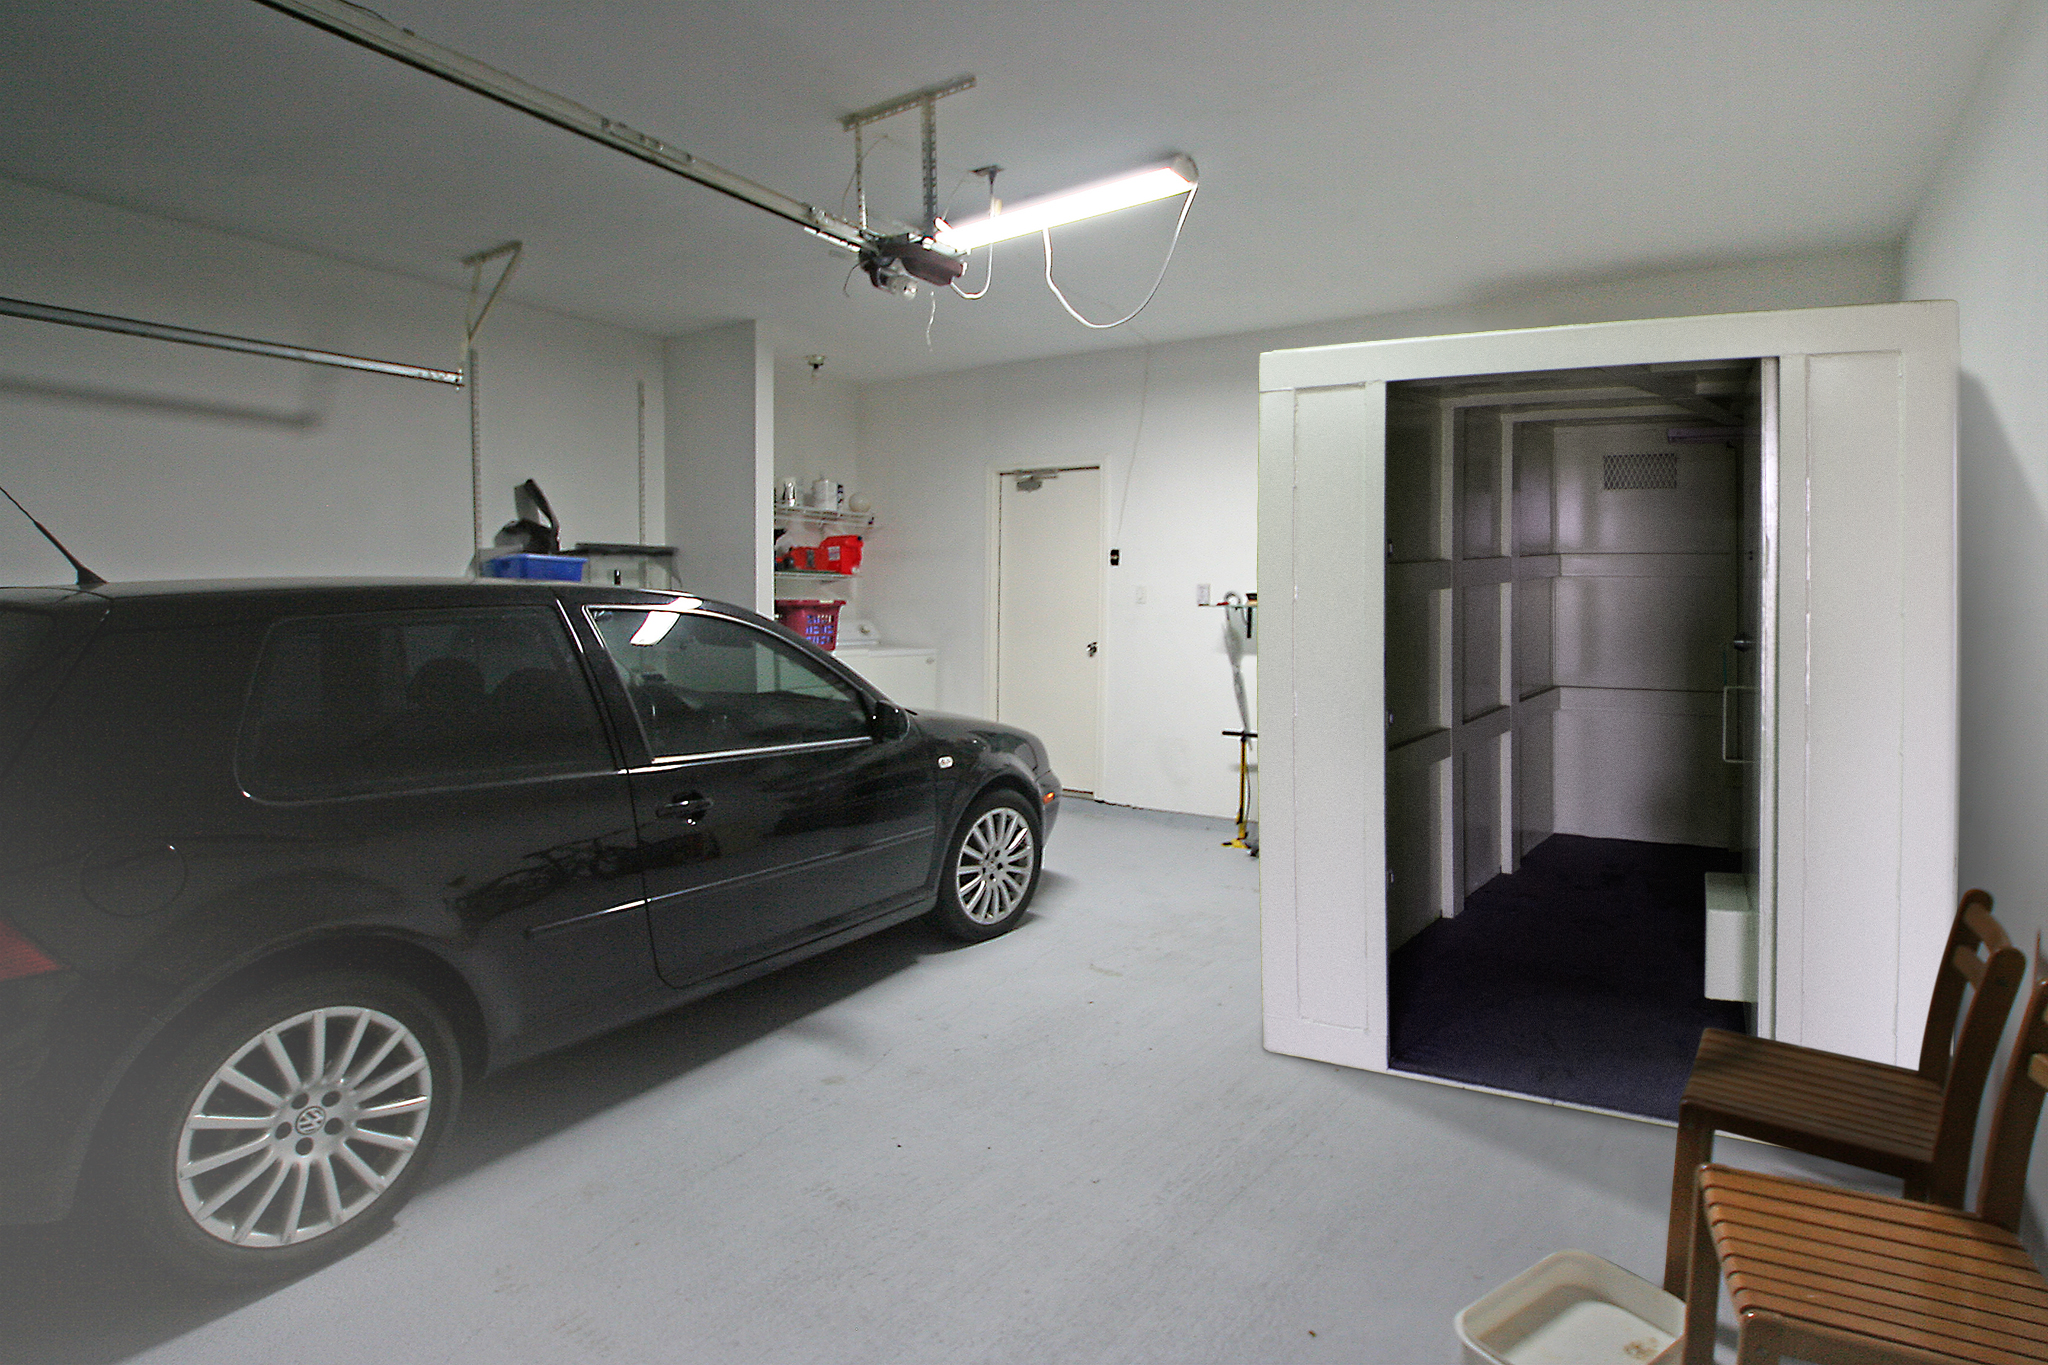 Safe rooms panic rooms and underground bunkers for Garage safe room